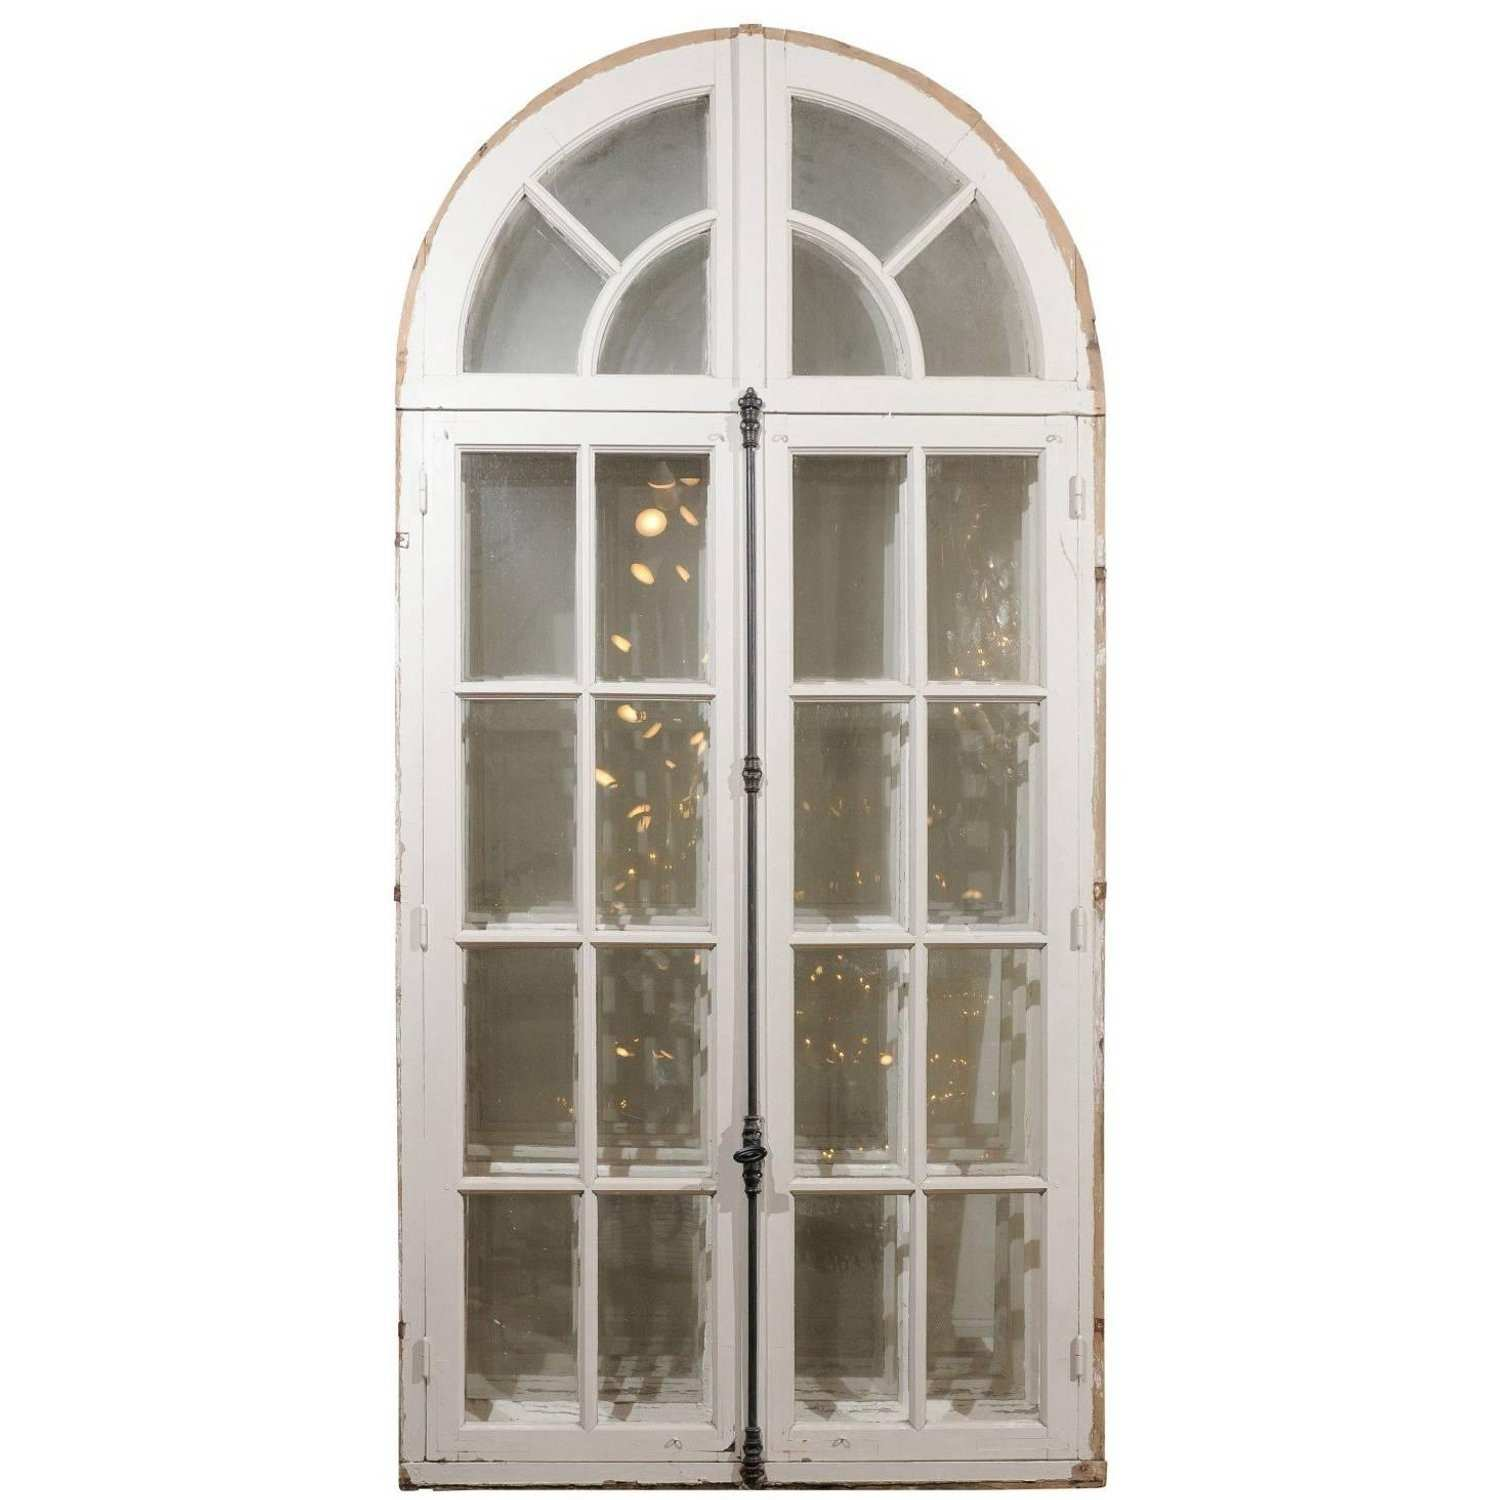 France Windows 49 For Sale at 1stdibs